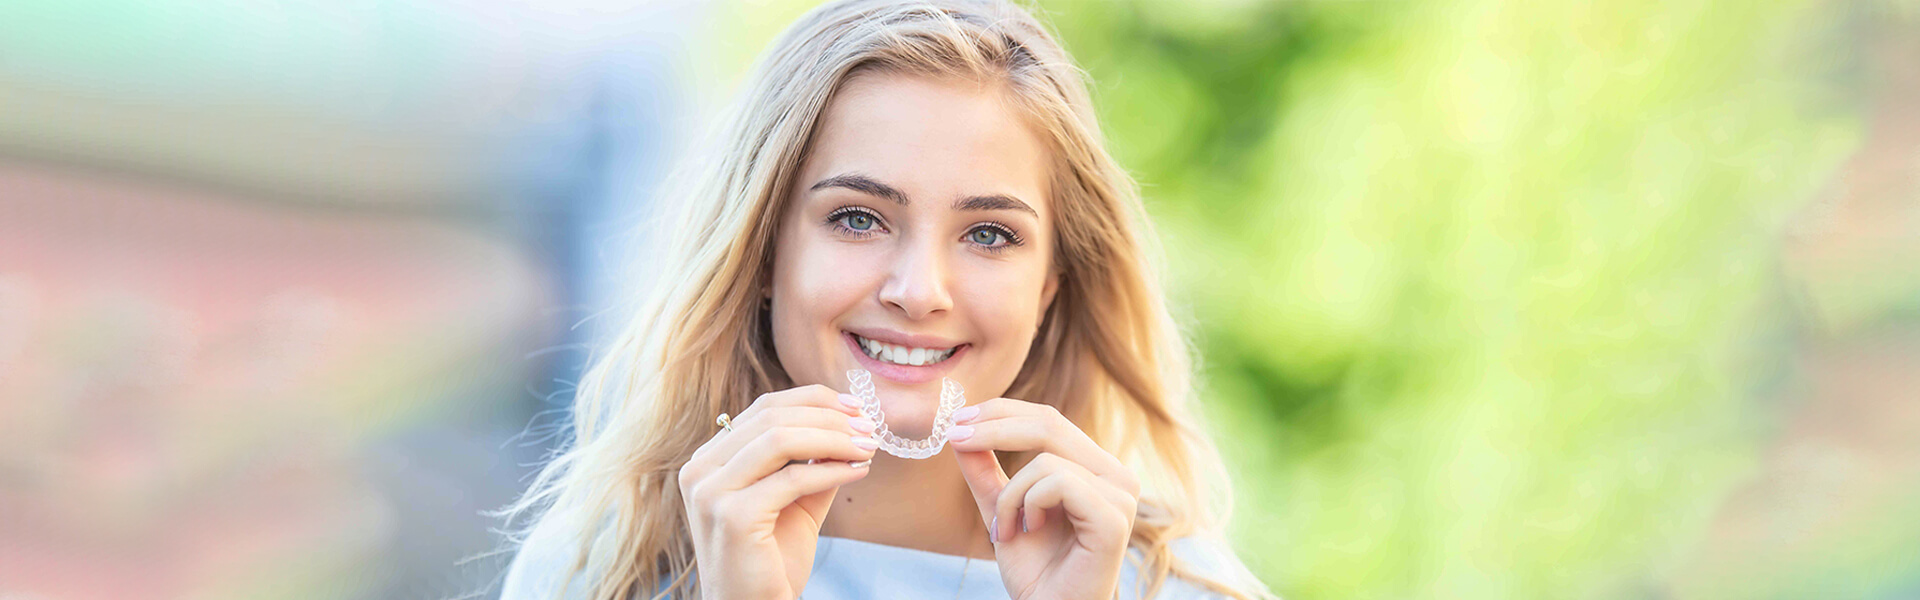 Is Invisalign Treatment Indeed Effective?